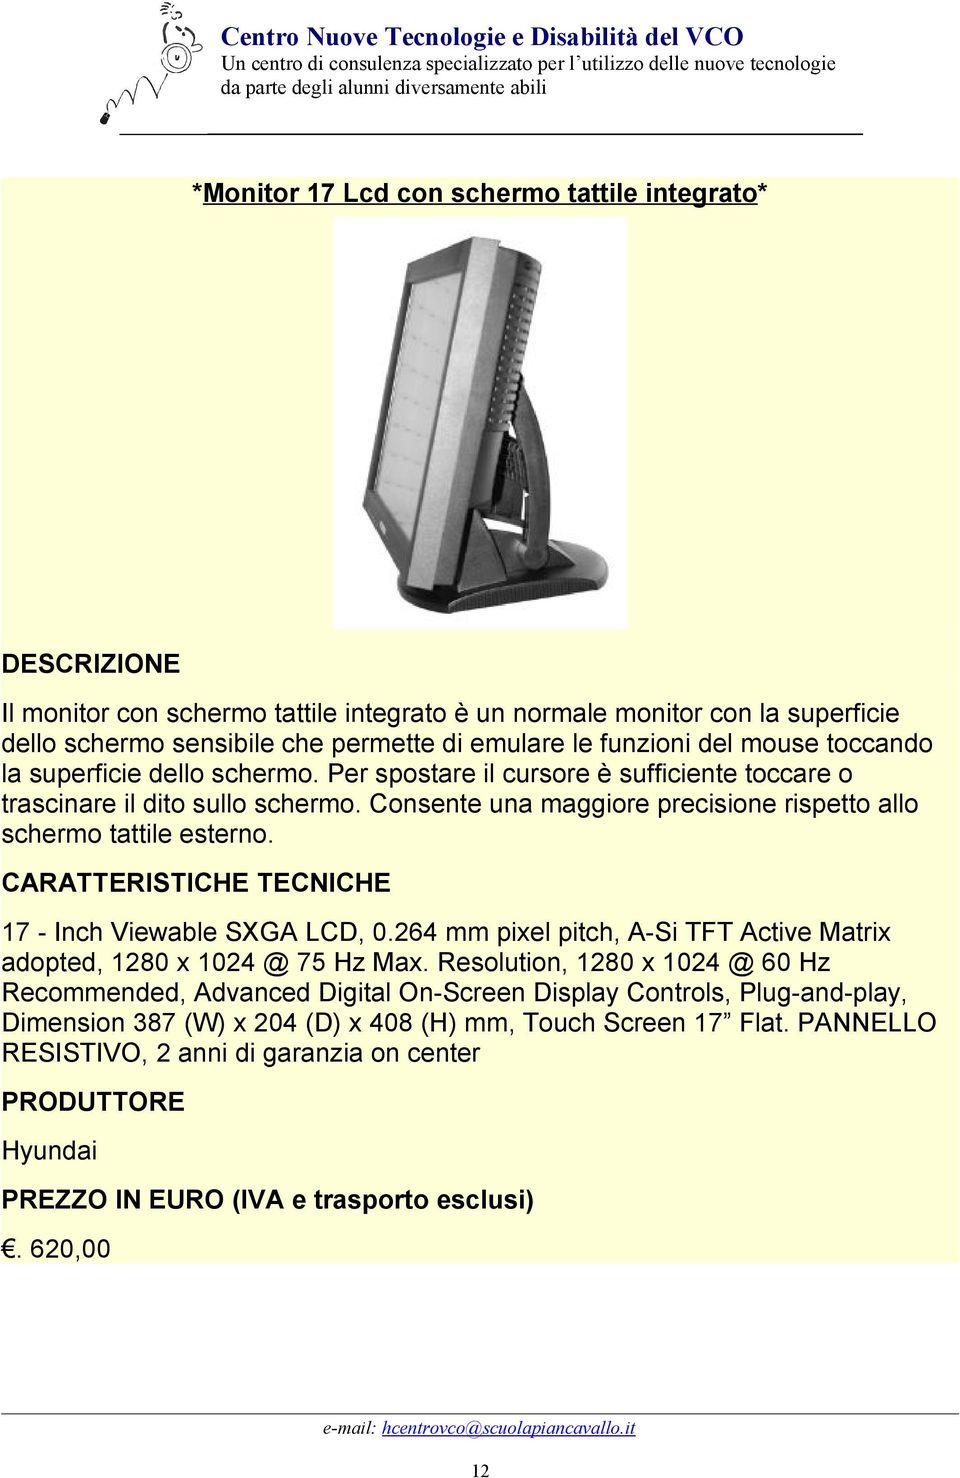 CARATTERISTICHE TECNICHE 17 - Inch Viewable SXGA LCD, 0.264 mm pixel pitch, A-Si TFT Active Matrix adopted, 1280 x 1024 @ 75 Hz Max.